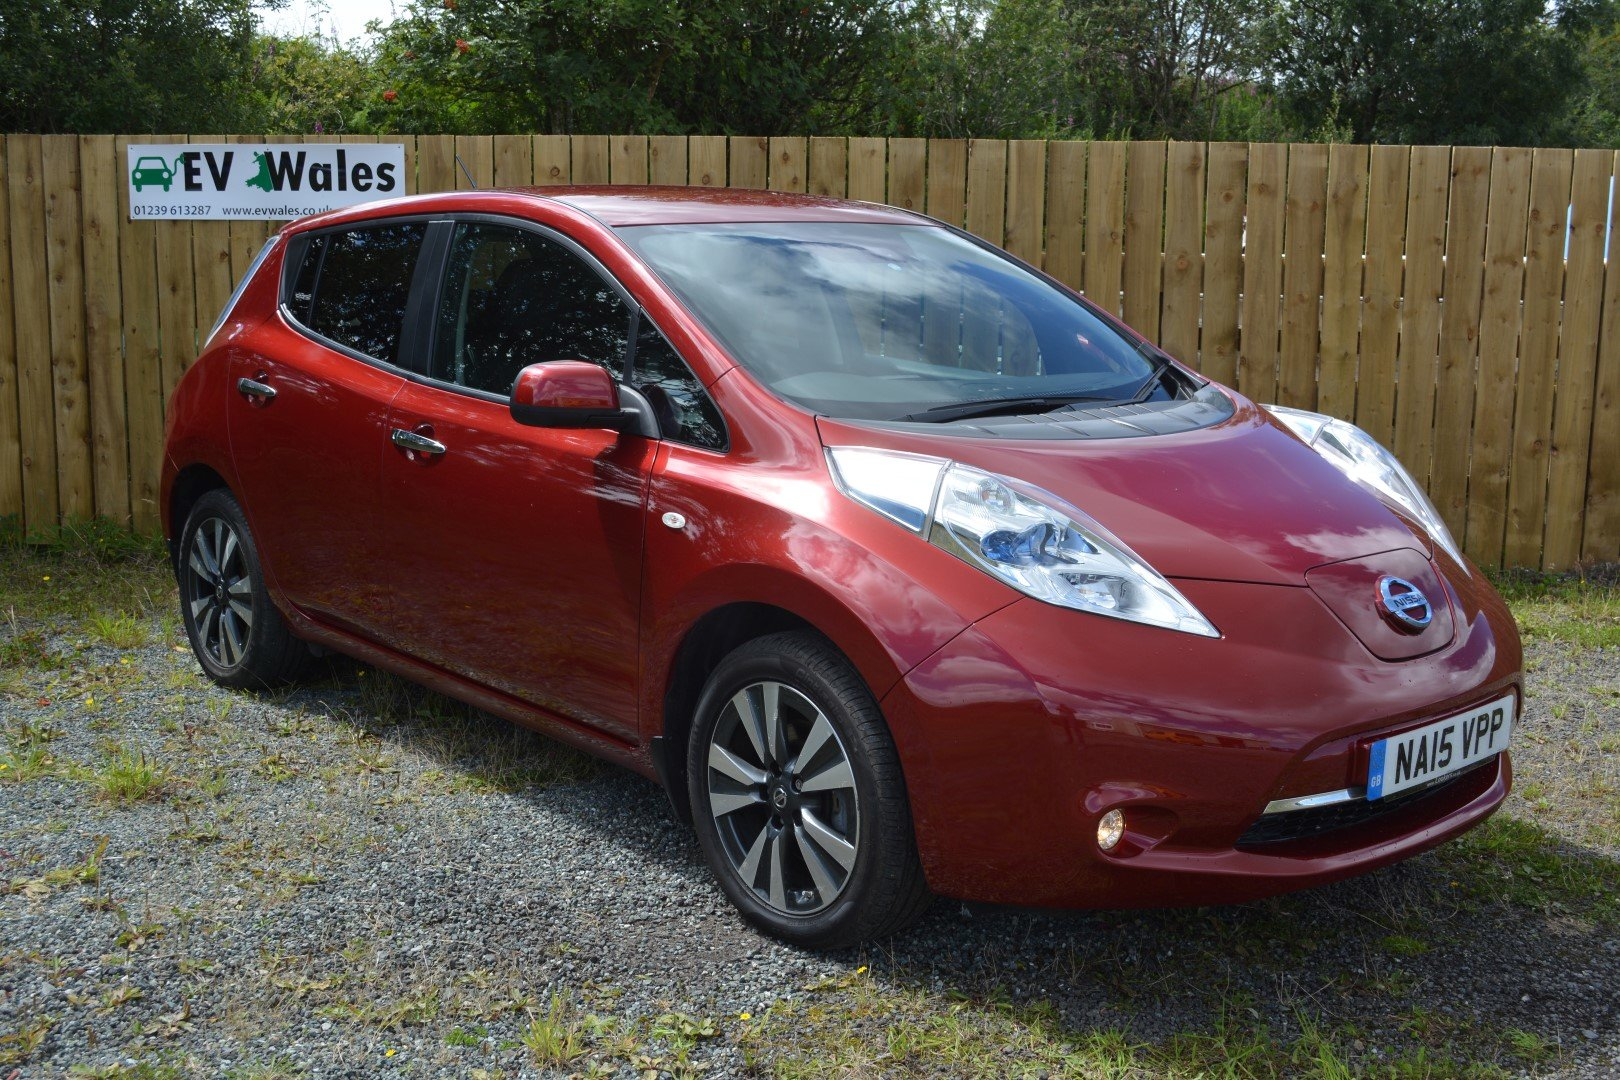 2015 Nissan Leaf Tekna 24kwh - Heated Leather - Sat Nav For Sale (picture 2 of 6)